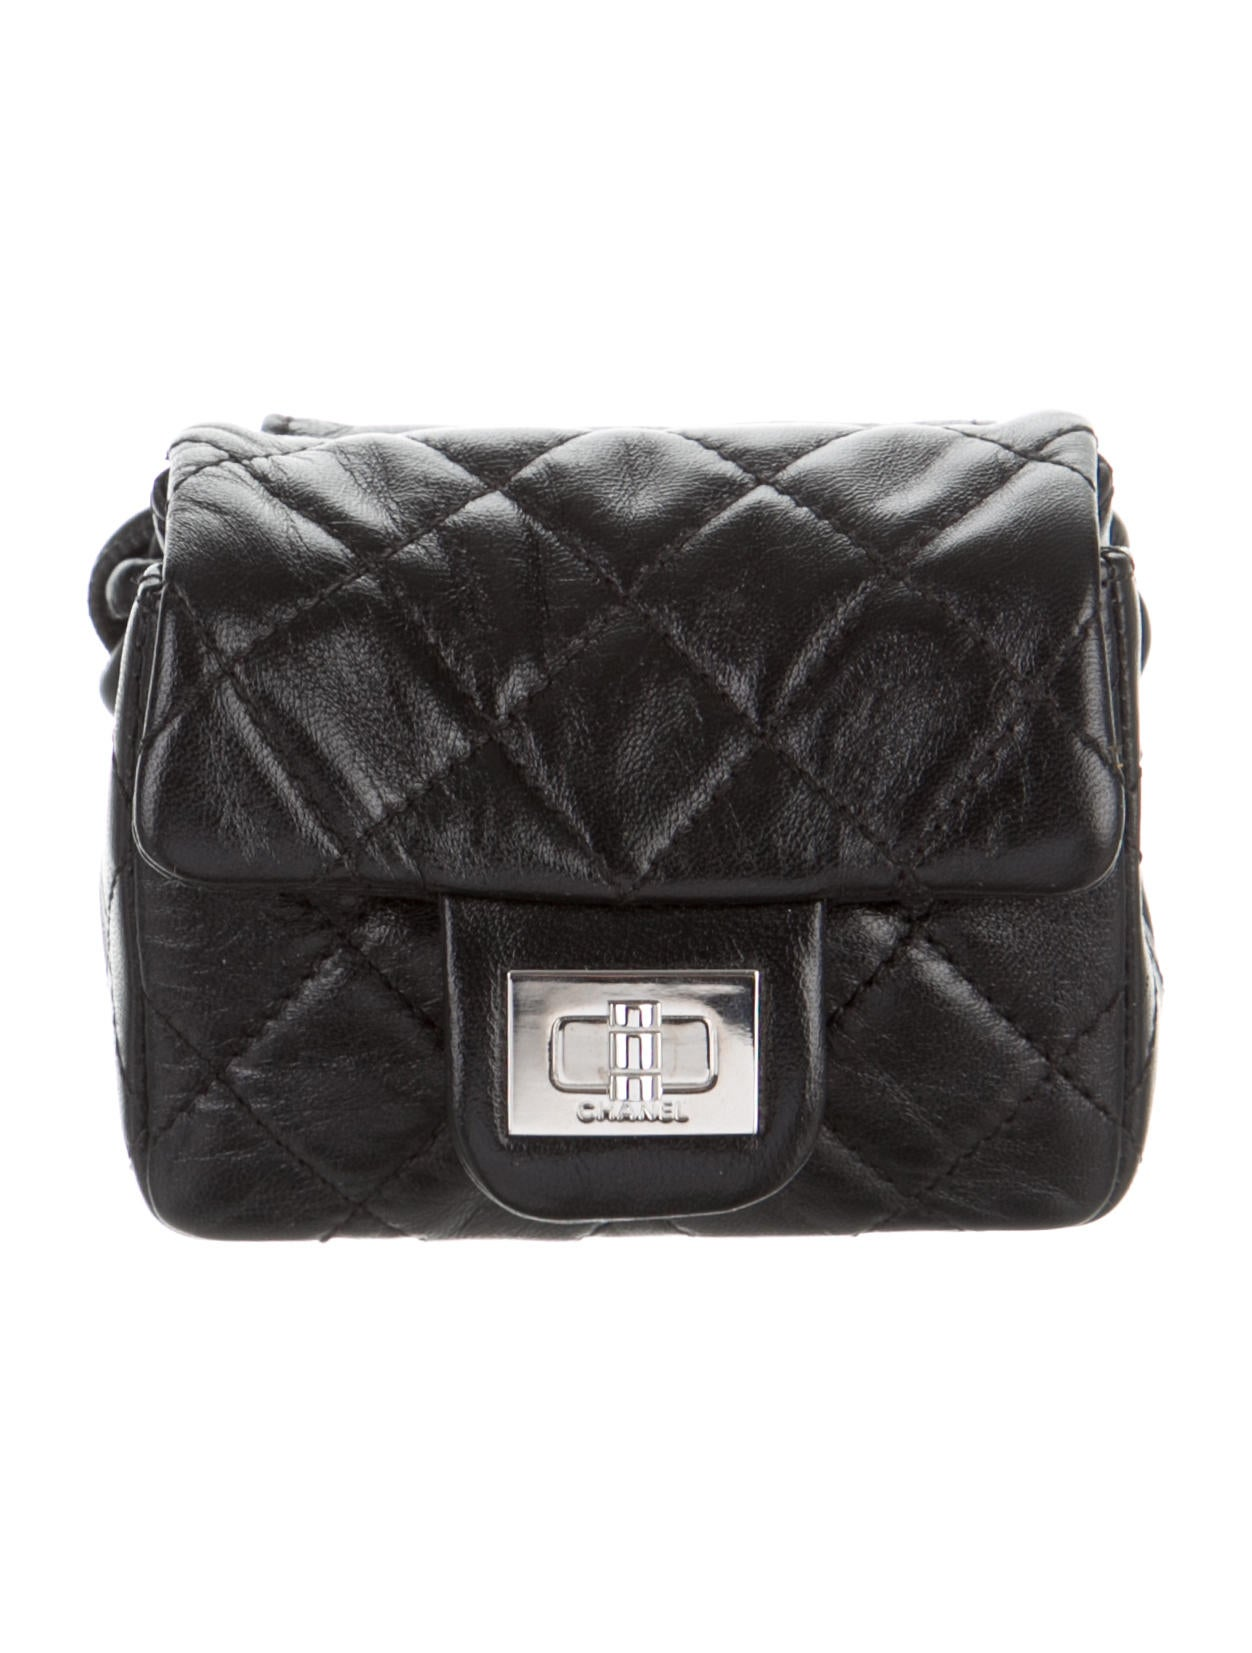 e267d043c88c7 Chanel Quilted Reissue Ankle Bag - Handbags - CHA107874 | The RealReal